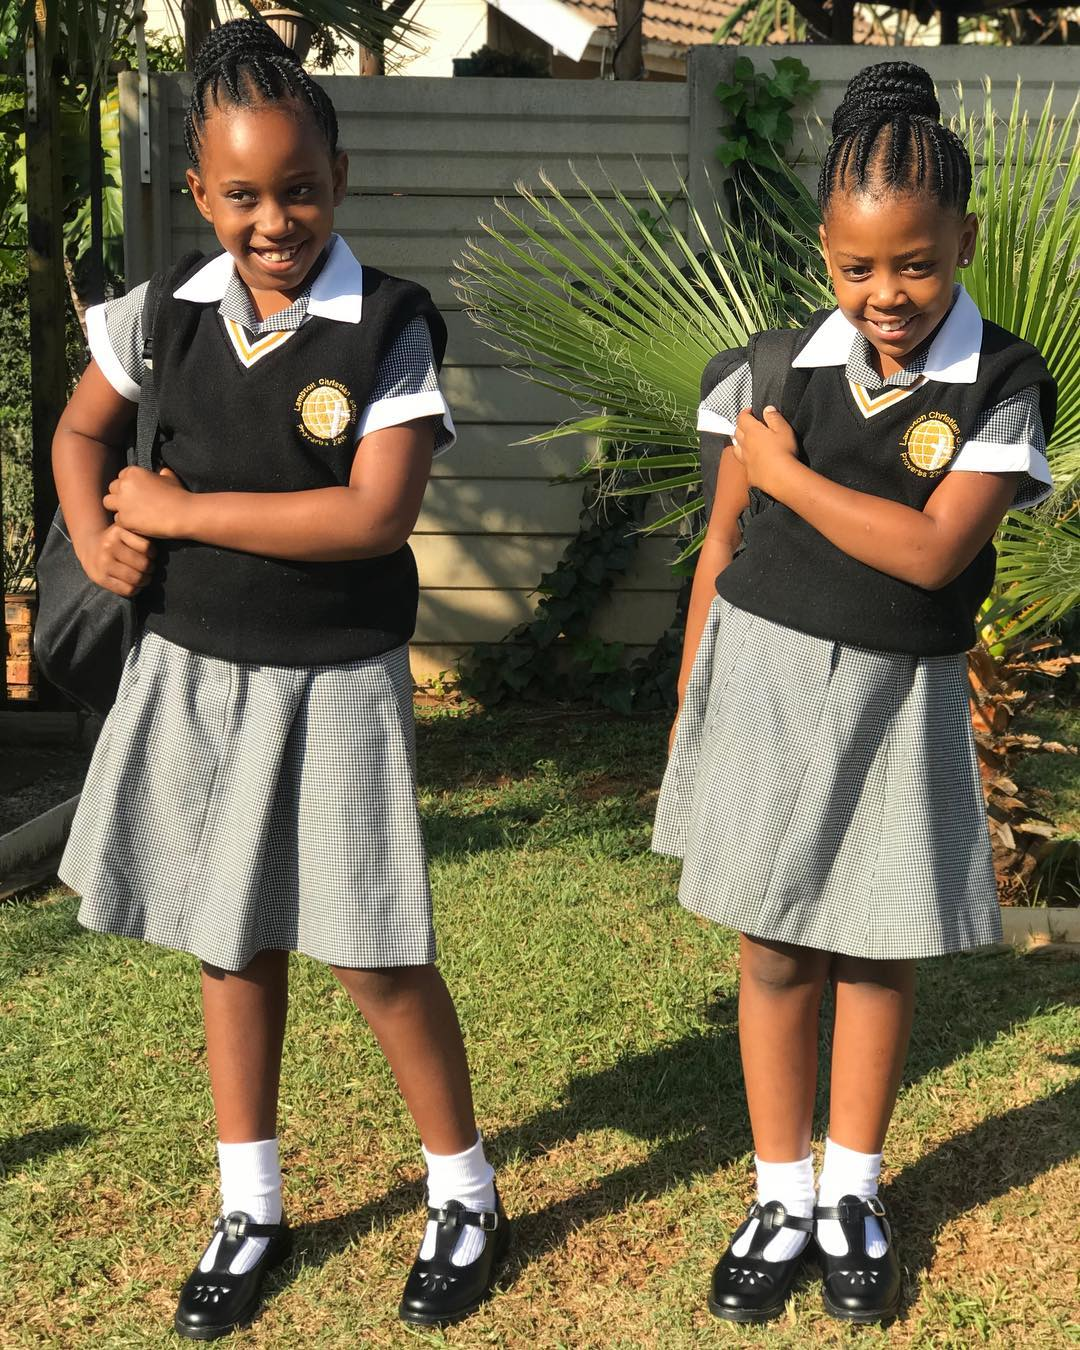 Backtoschool Mzansi Celebs With Their Kids On First Day -5046